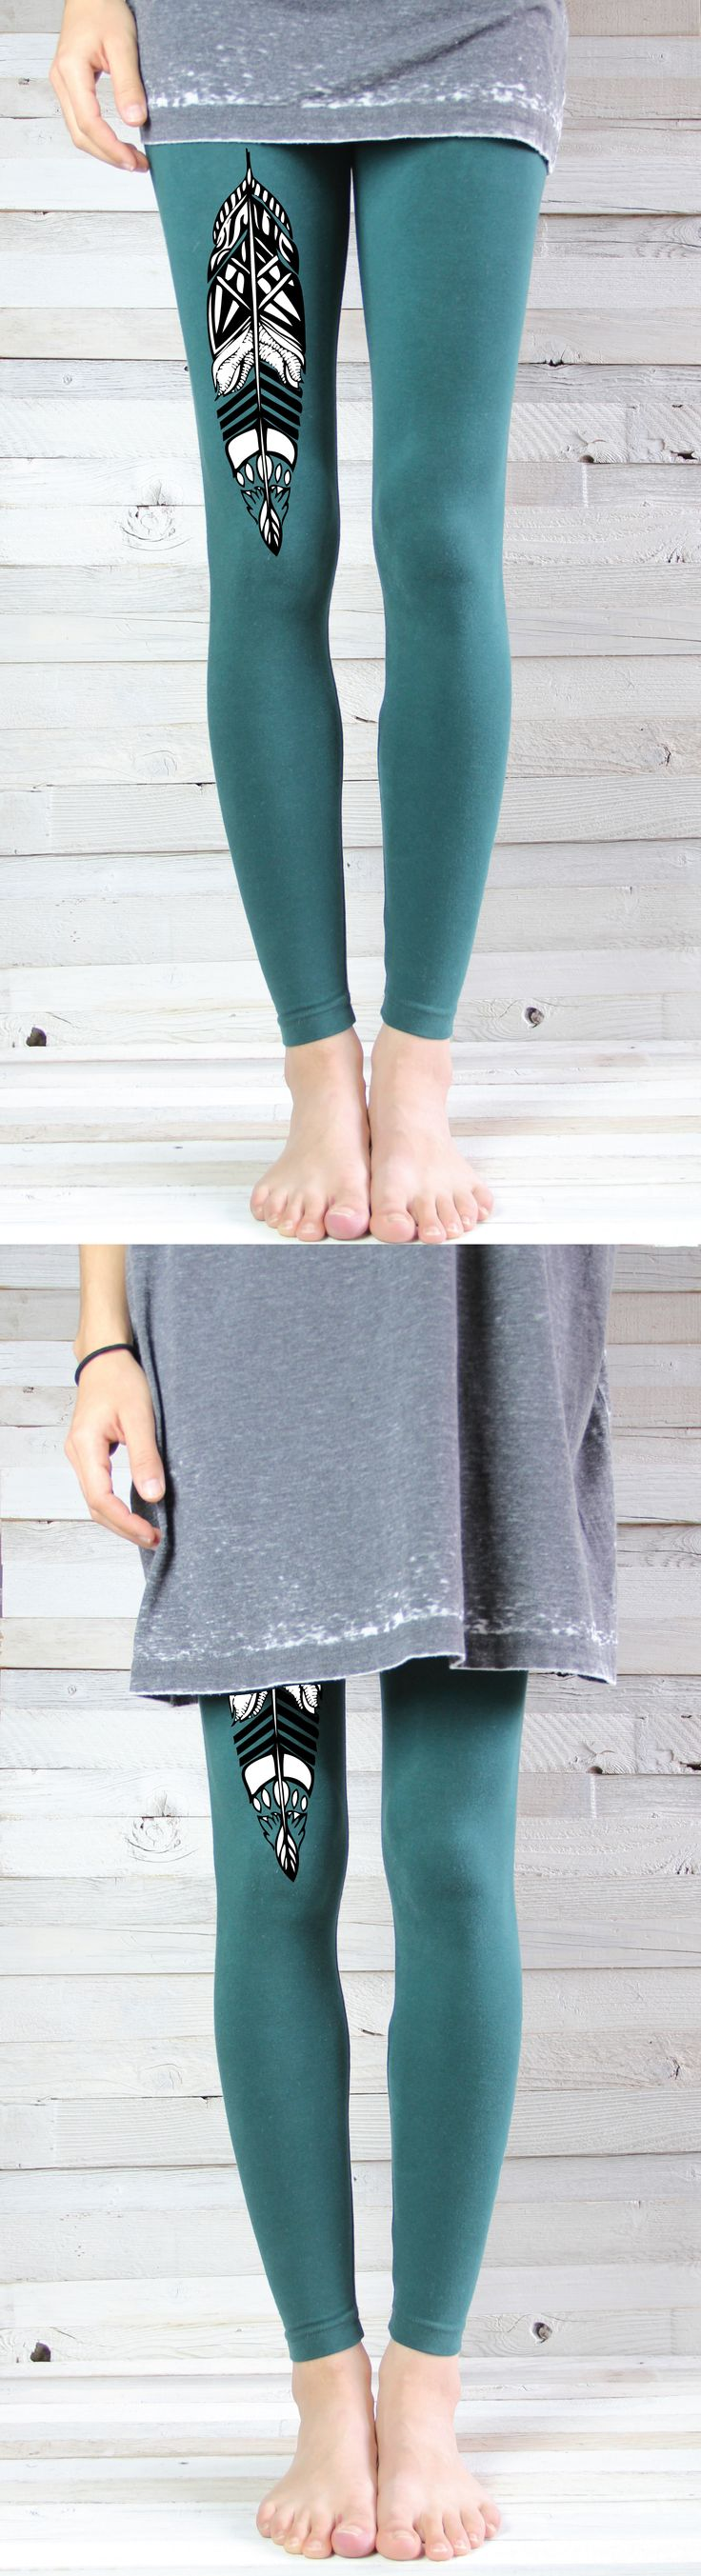 Feather Yoga Leggings - Yoga Pants - by ArimaDesigns.etsy.com